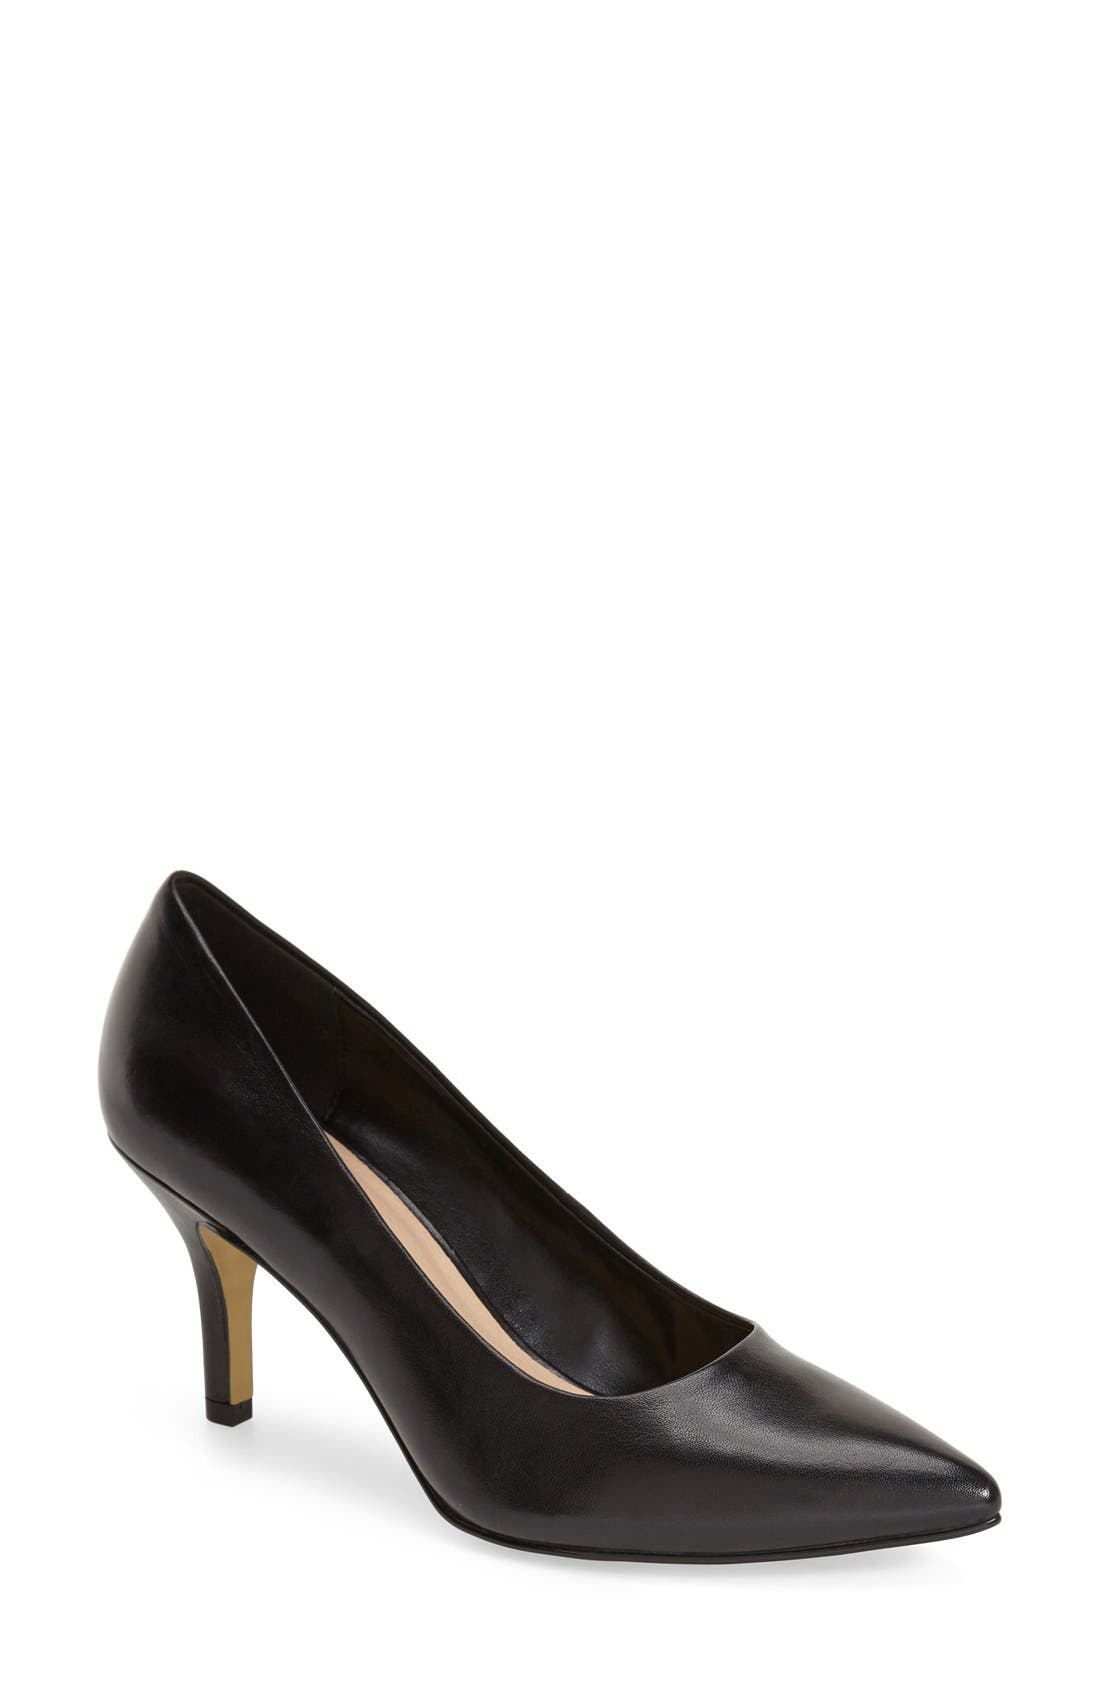 'Define' Pointy Toe Pump,                         Main,                         color, Black Leather